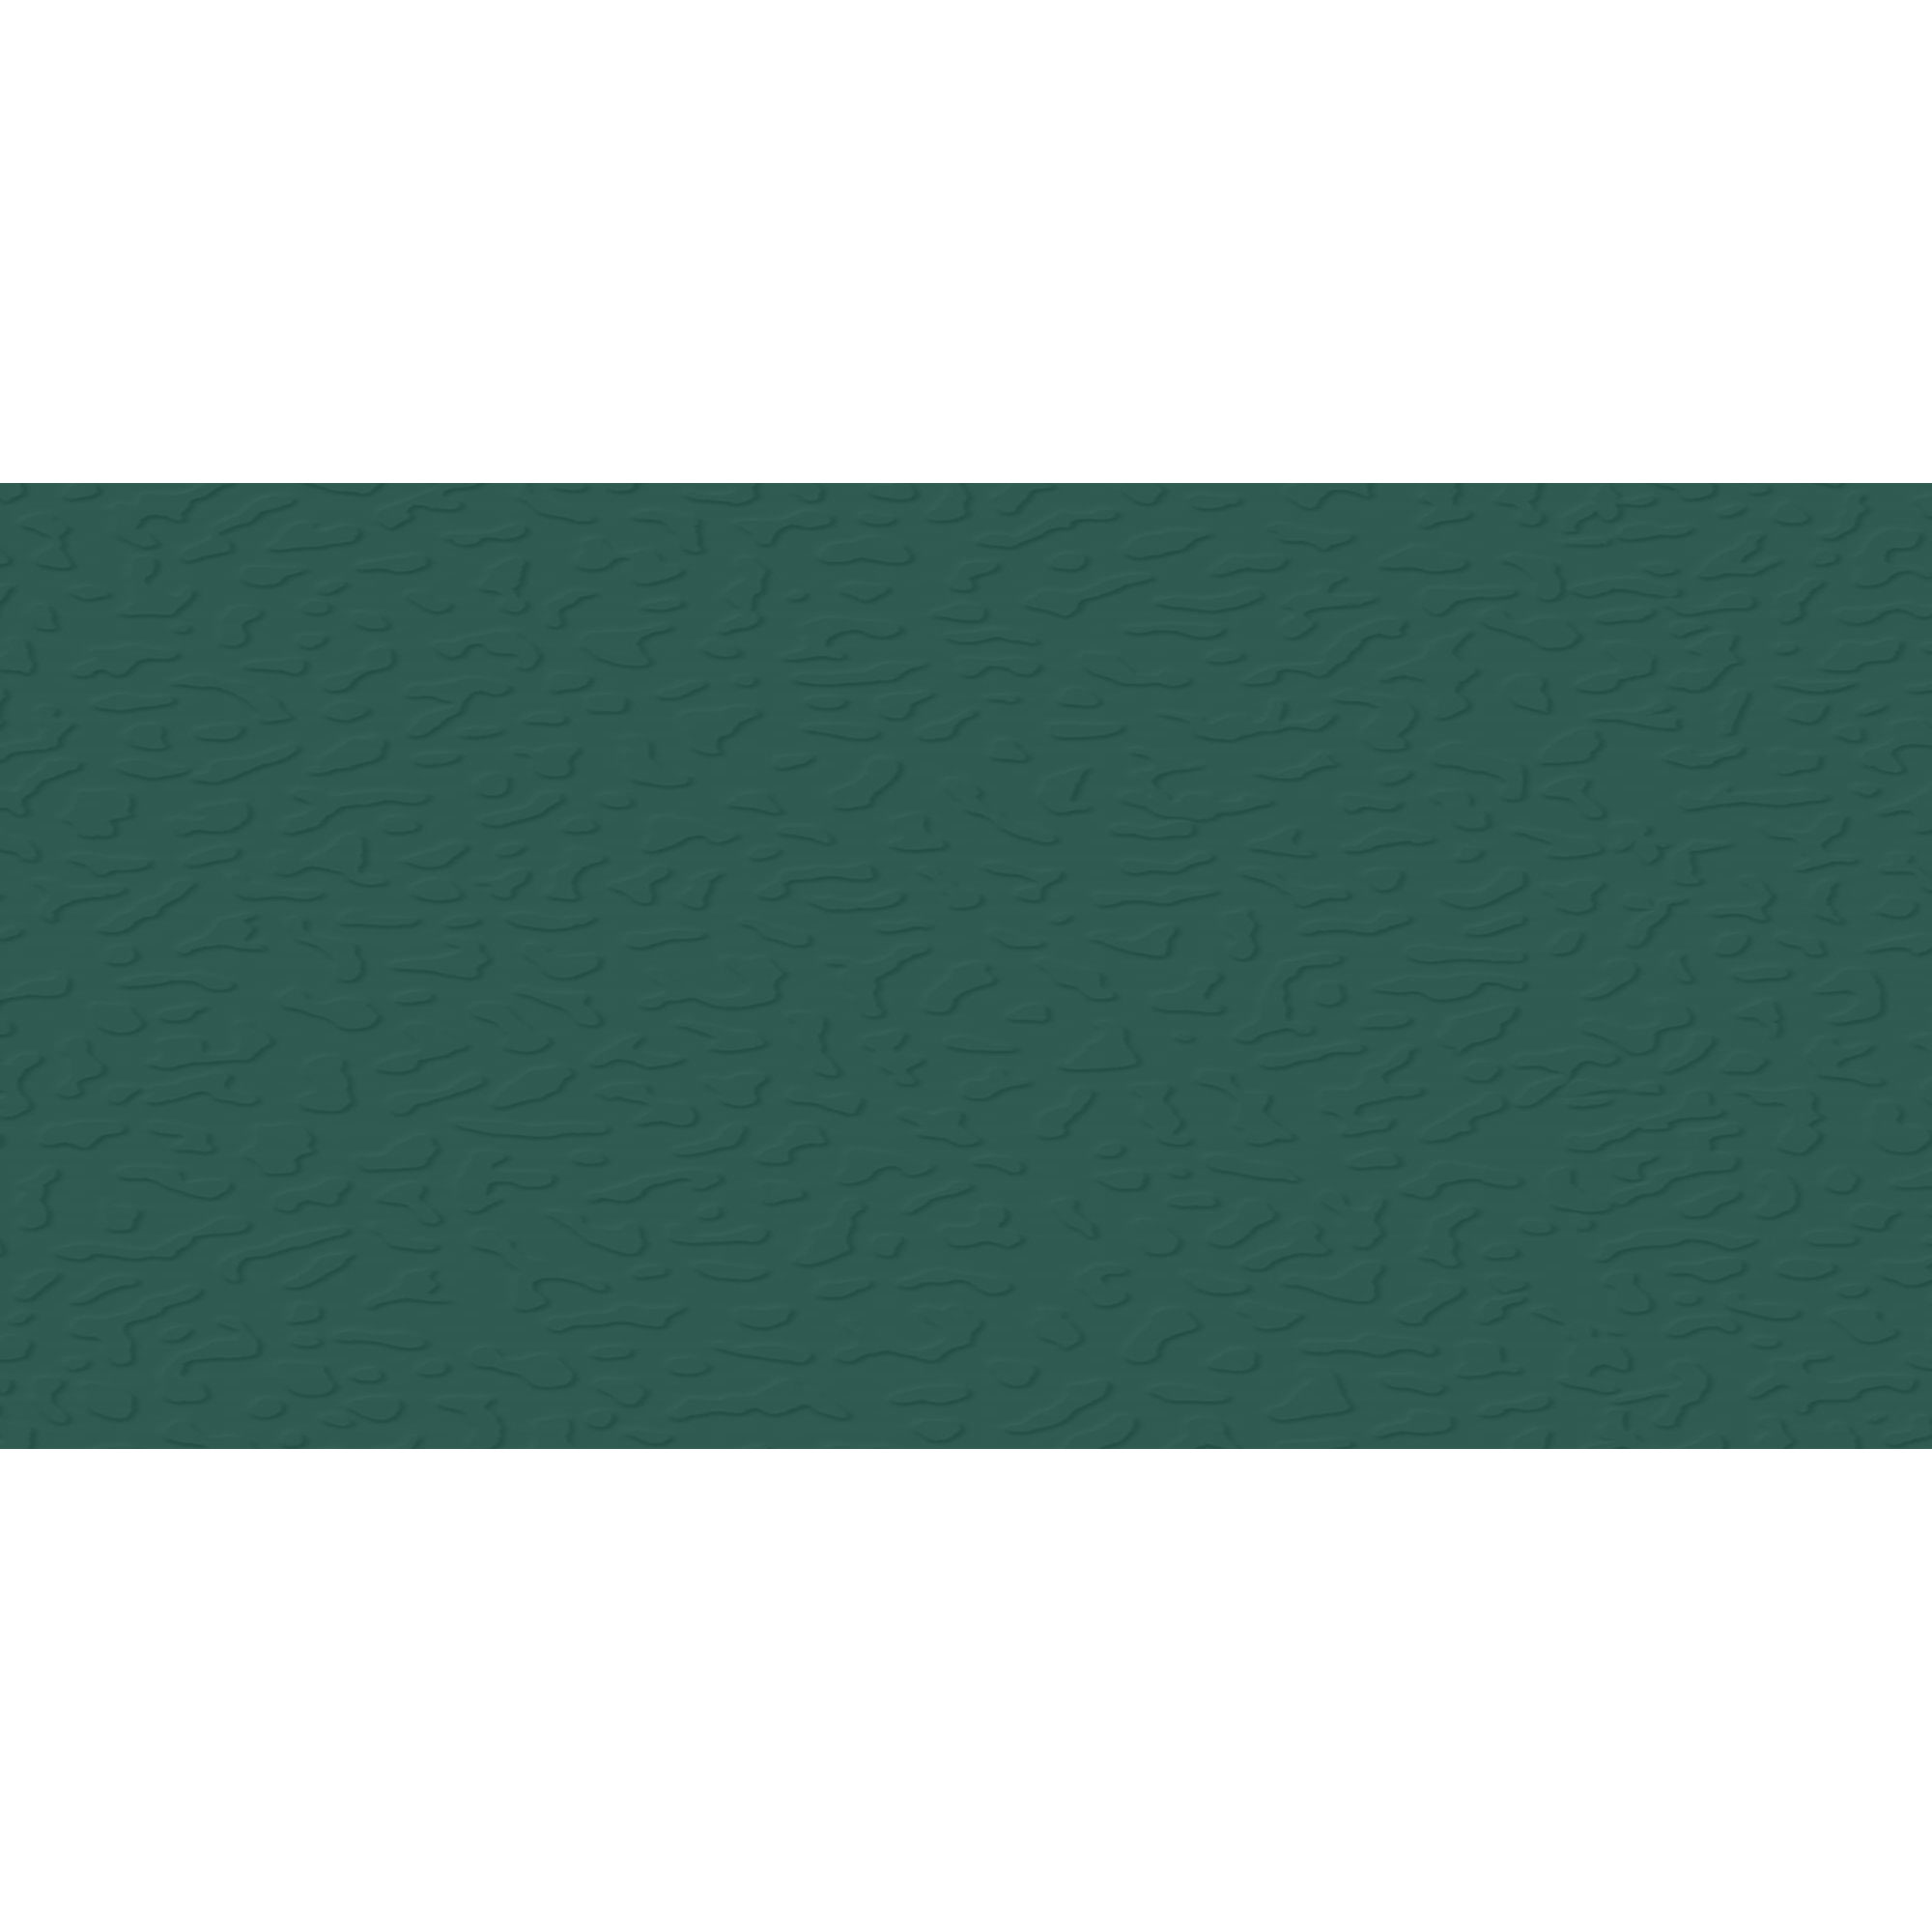 Roppe Designers Choice Textured 6 x 12 Forest Green